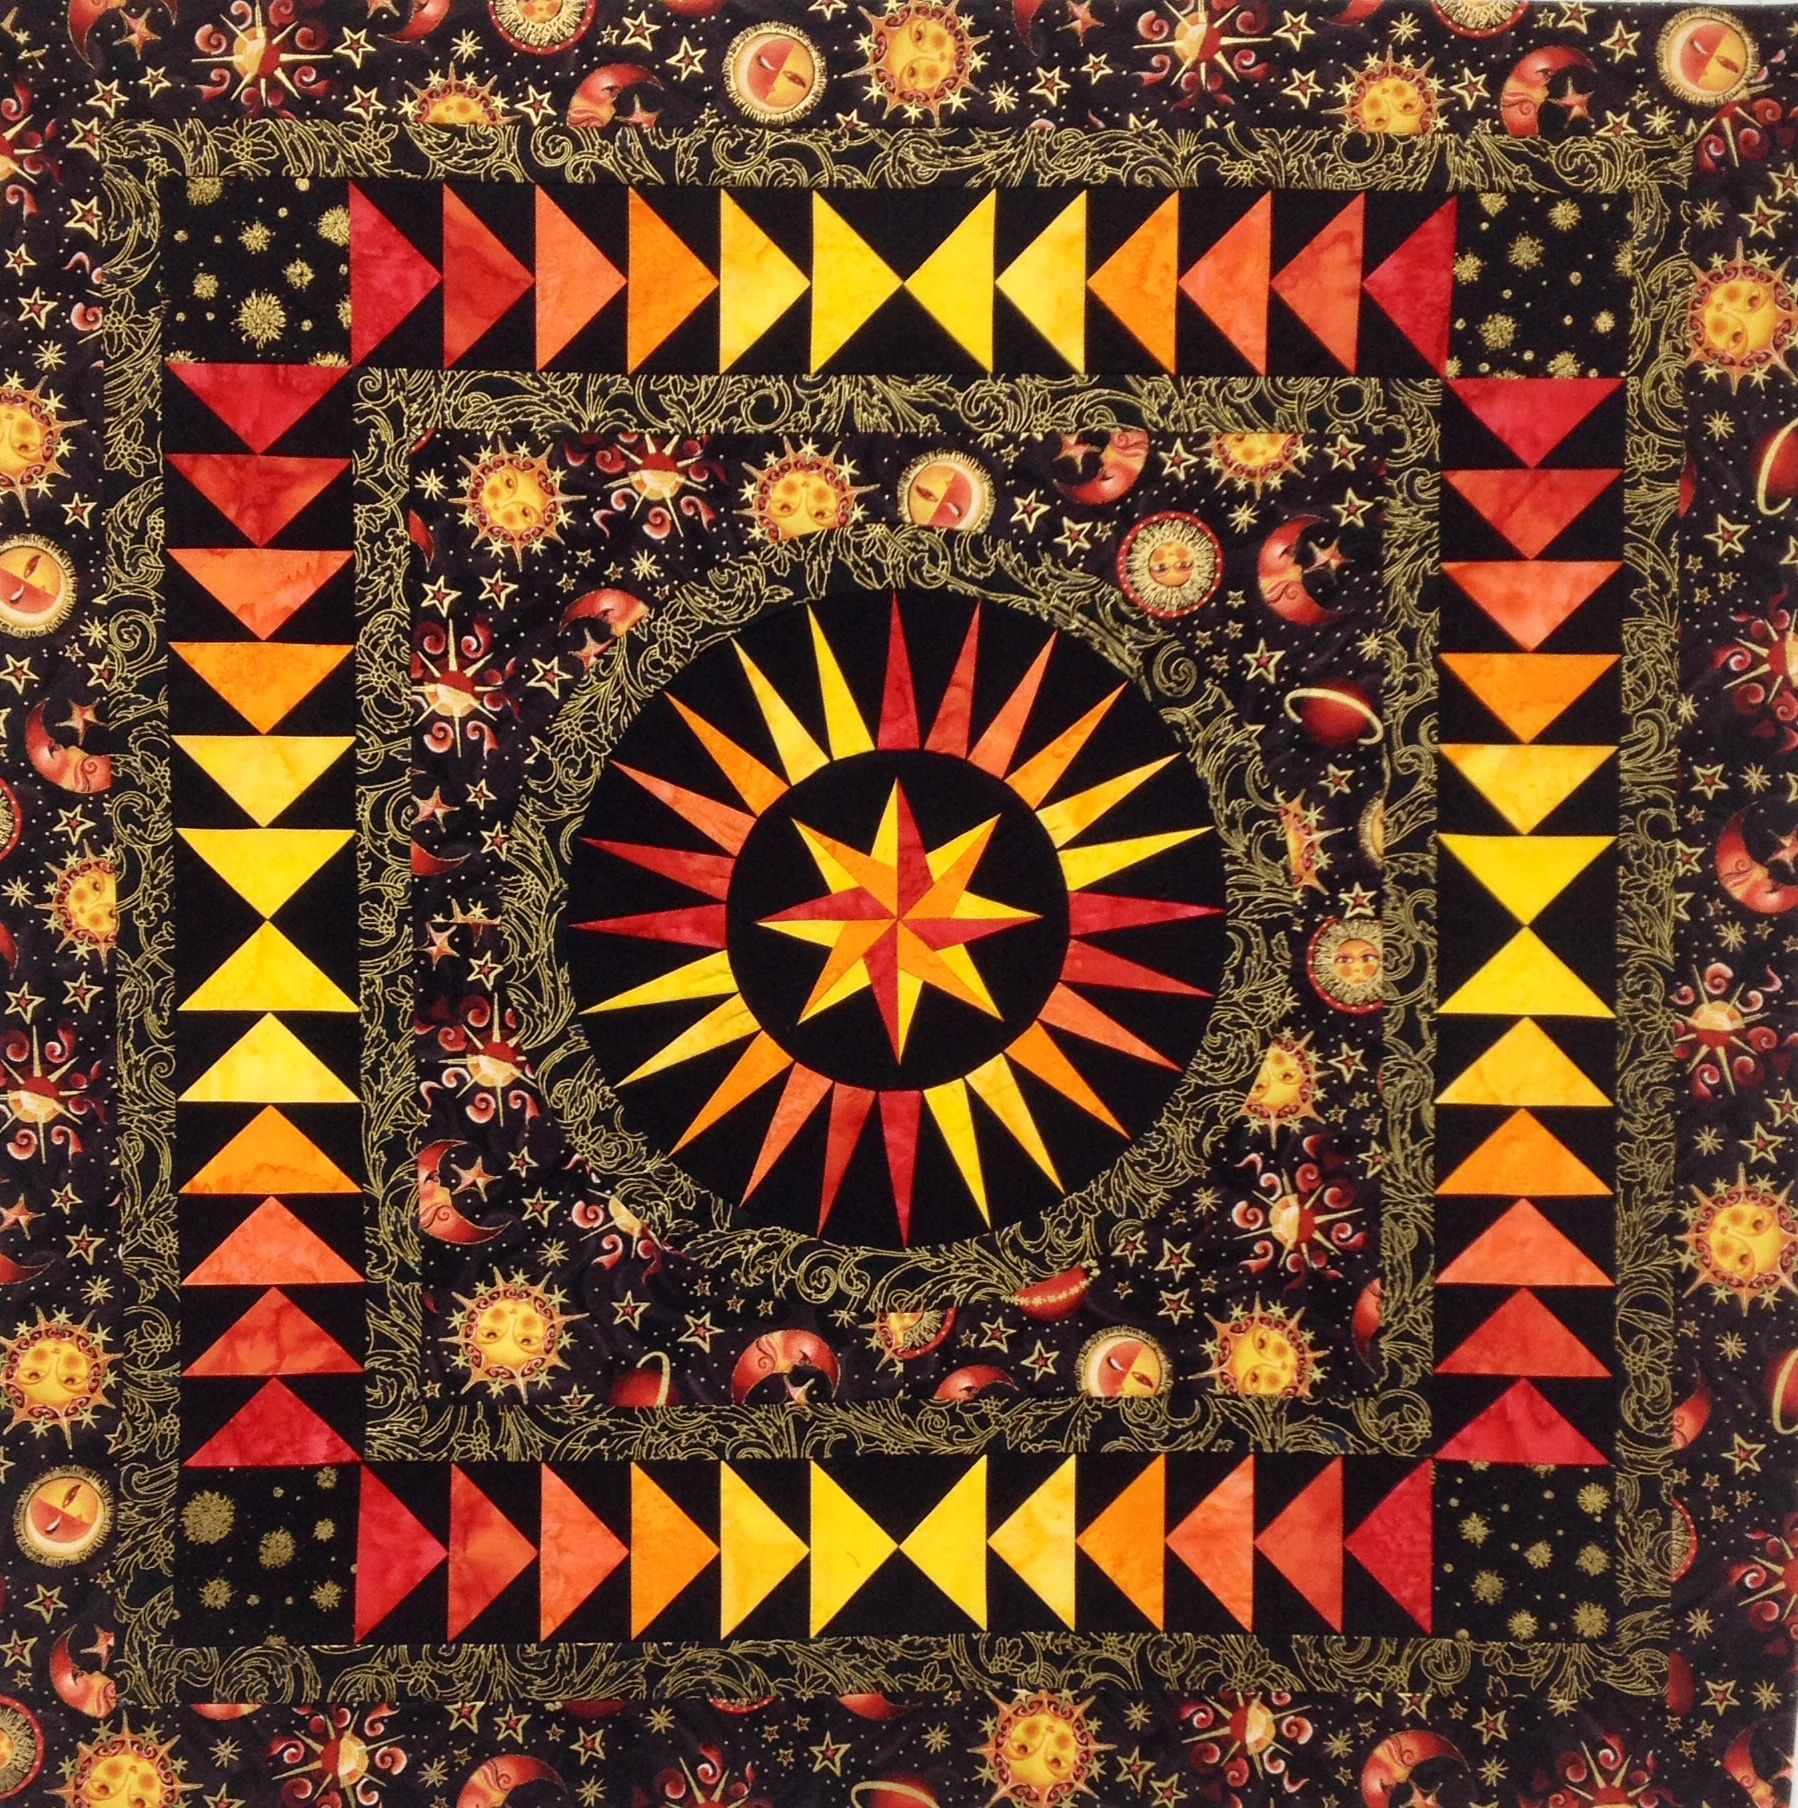 Compass Point Quilts | 2015-10/17 – BeColourful HAPPINESS Workshop – Material Girls Quilt Guild, Leominster, MA